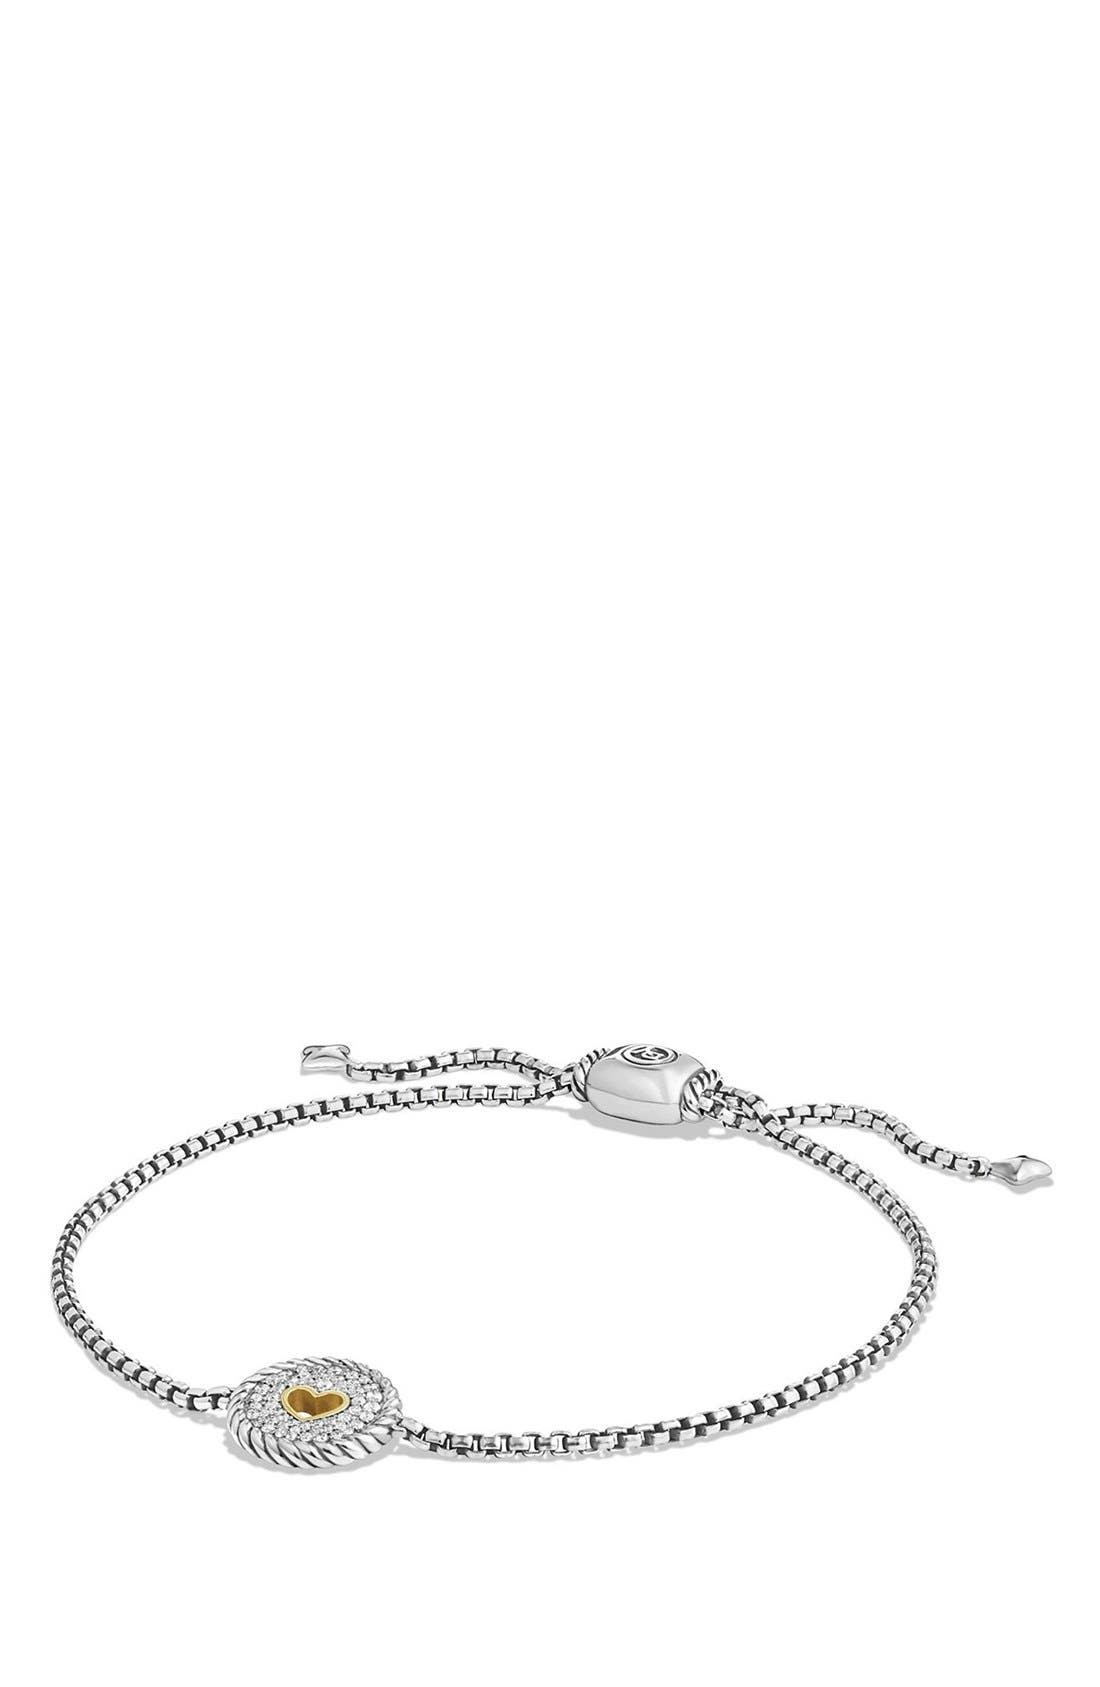 'Cable Collectibles' Heart Station Bracelet with Diamonds,                             Main thumbnail 1, color,                             SILVER/ GOLD